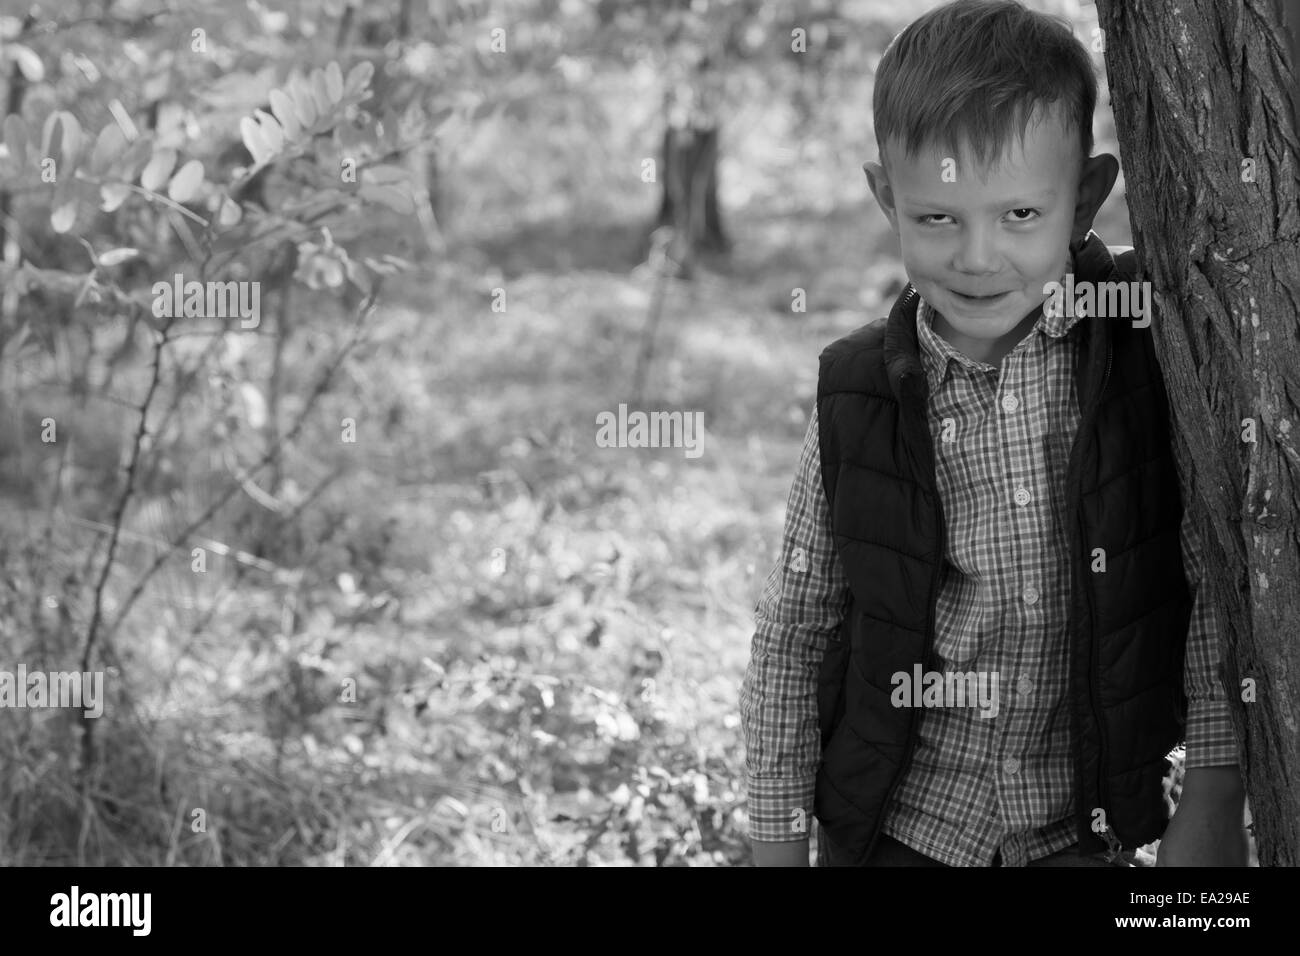 Portrait of Boy with Devilish Grin Outdoors Leaning Against Tree - Stock Image